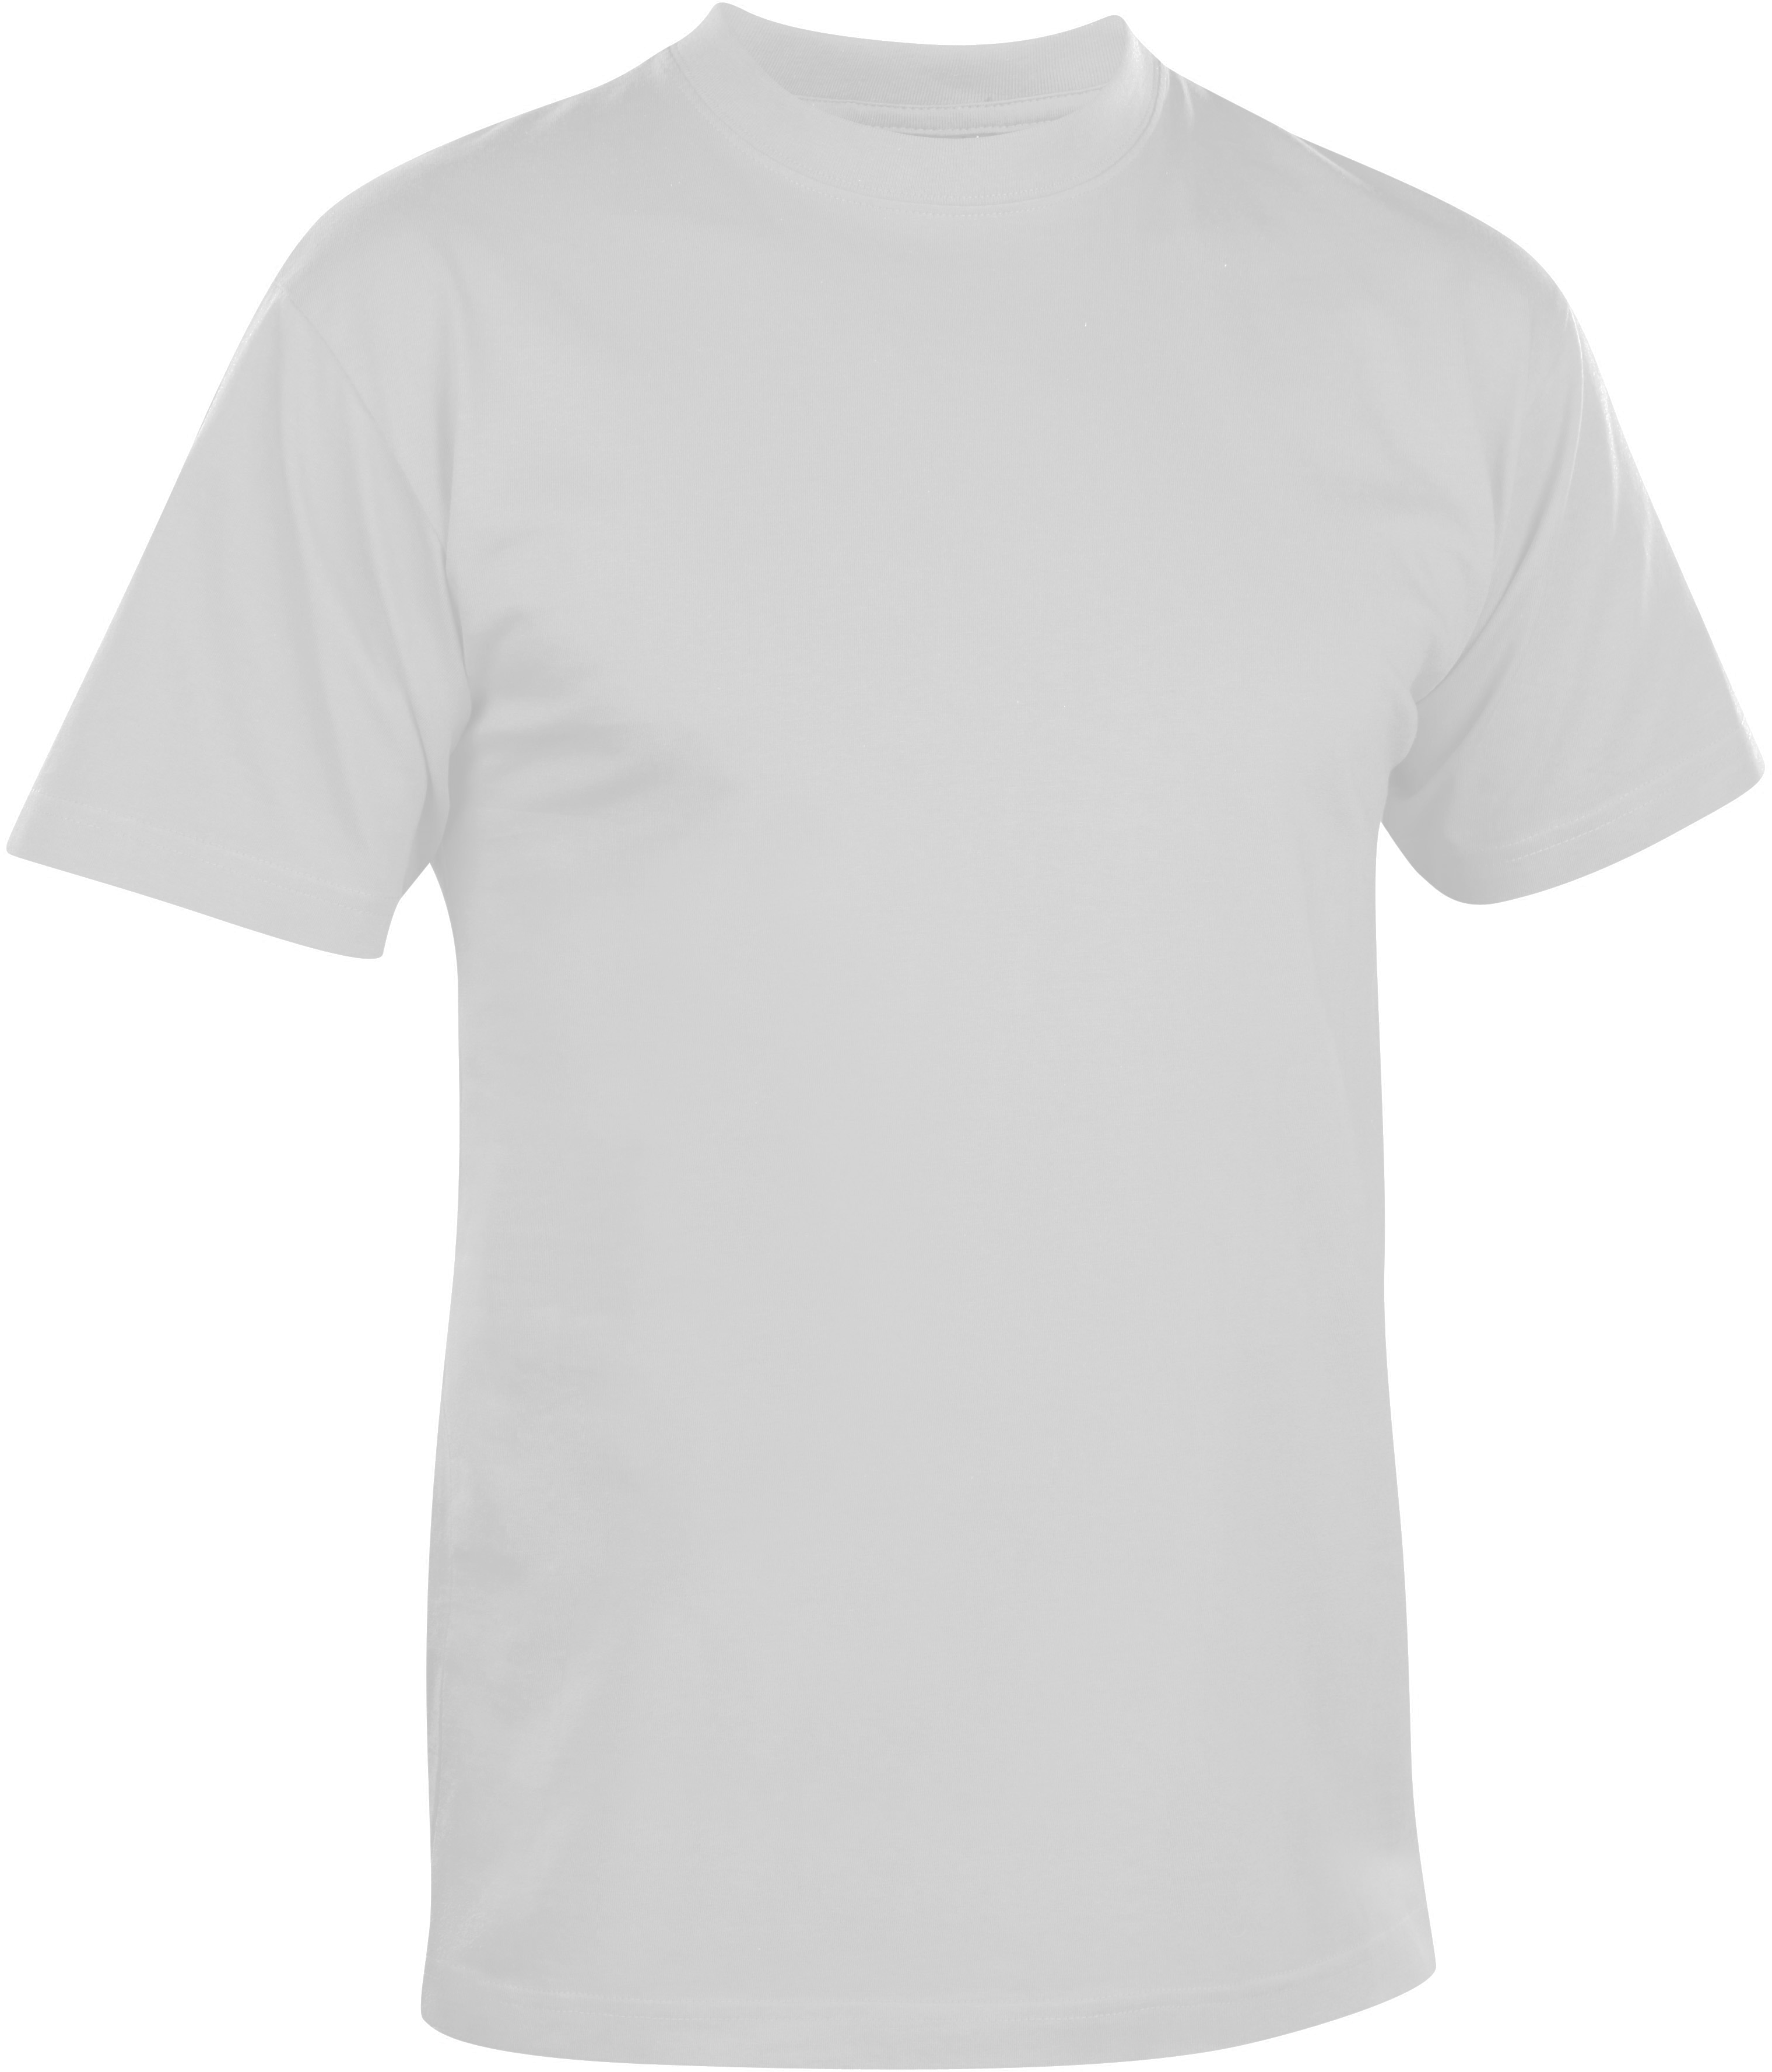 White t shirt template png. Download image blank mockup